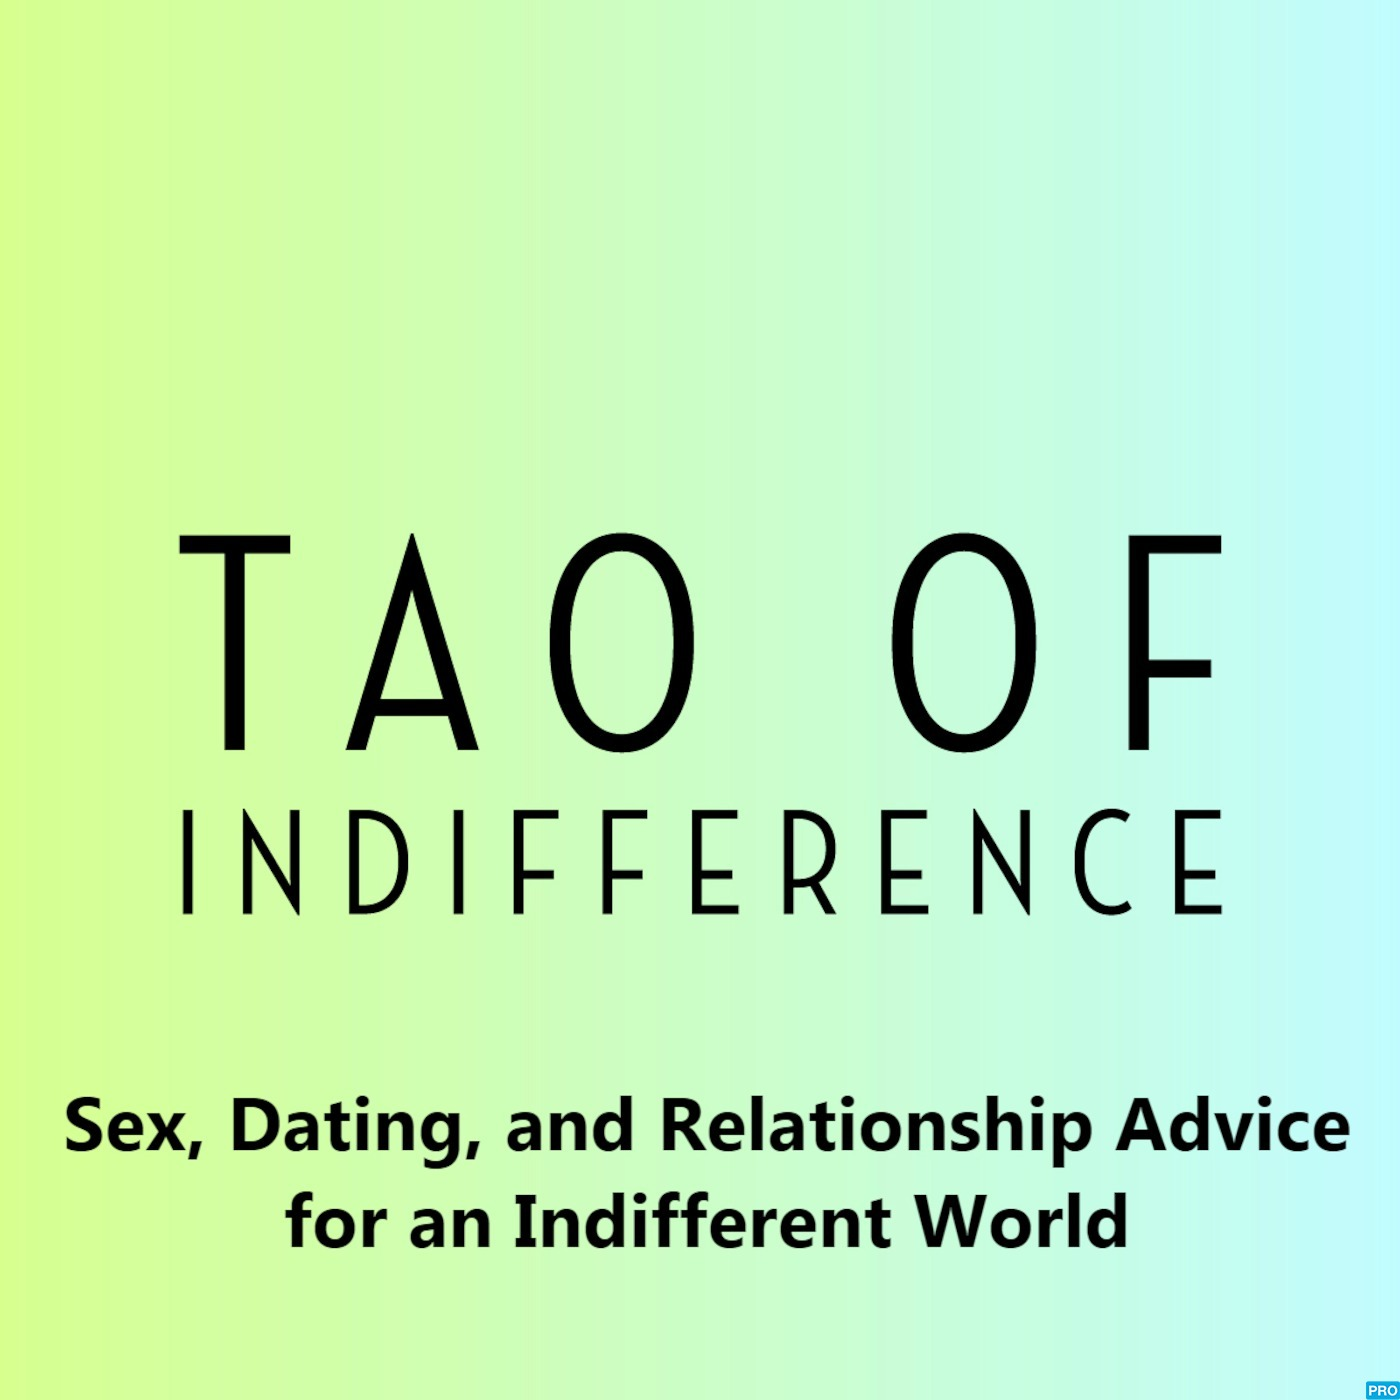 Dating and Relationship Advice - Tao of Indifference